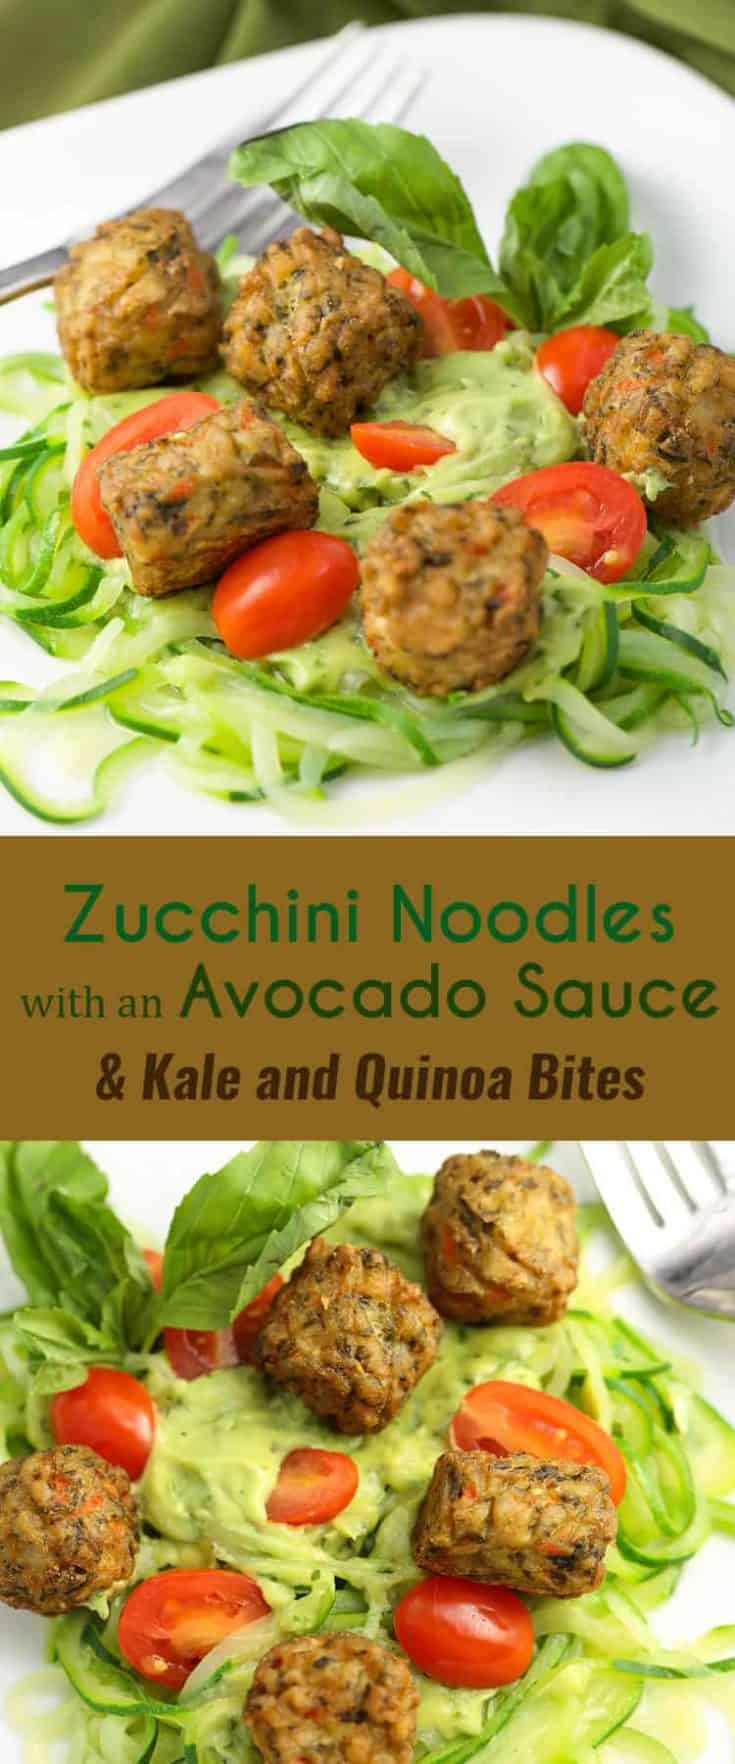 This Zucchini Noodles with an Avocado Sauce and Kale and Quinoa Bites recipe is packed with vegetables, a great source of fibre, and is delicious! #zucchininoodles #avocadosauce